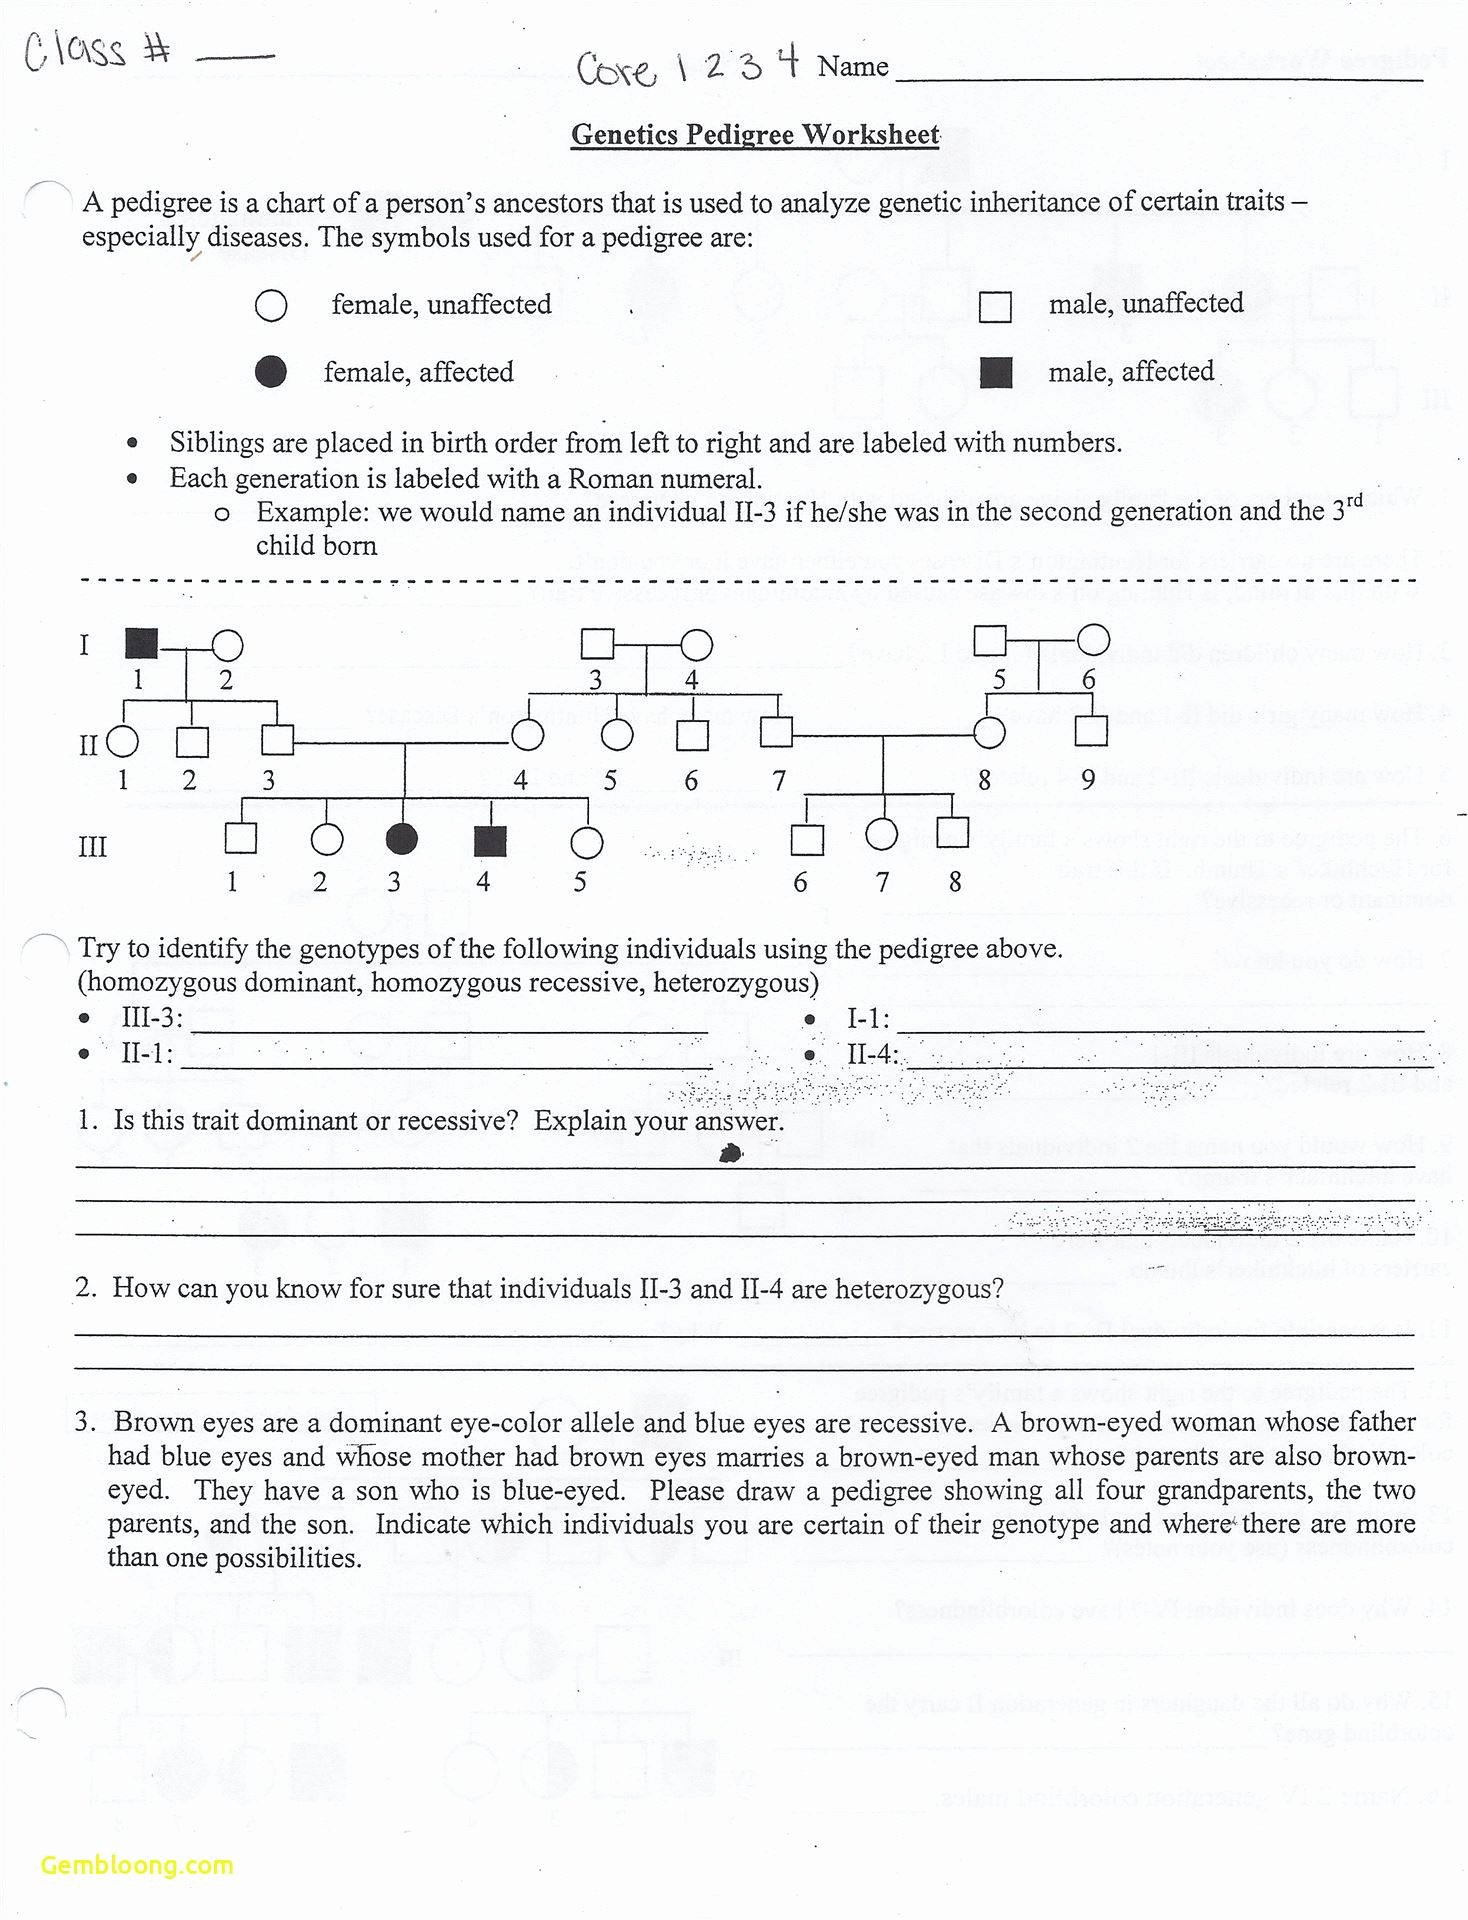 Genetics Worksheet Answers Key Luxury Mendelian Genetics Worksheet Answer Key